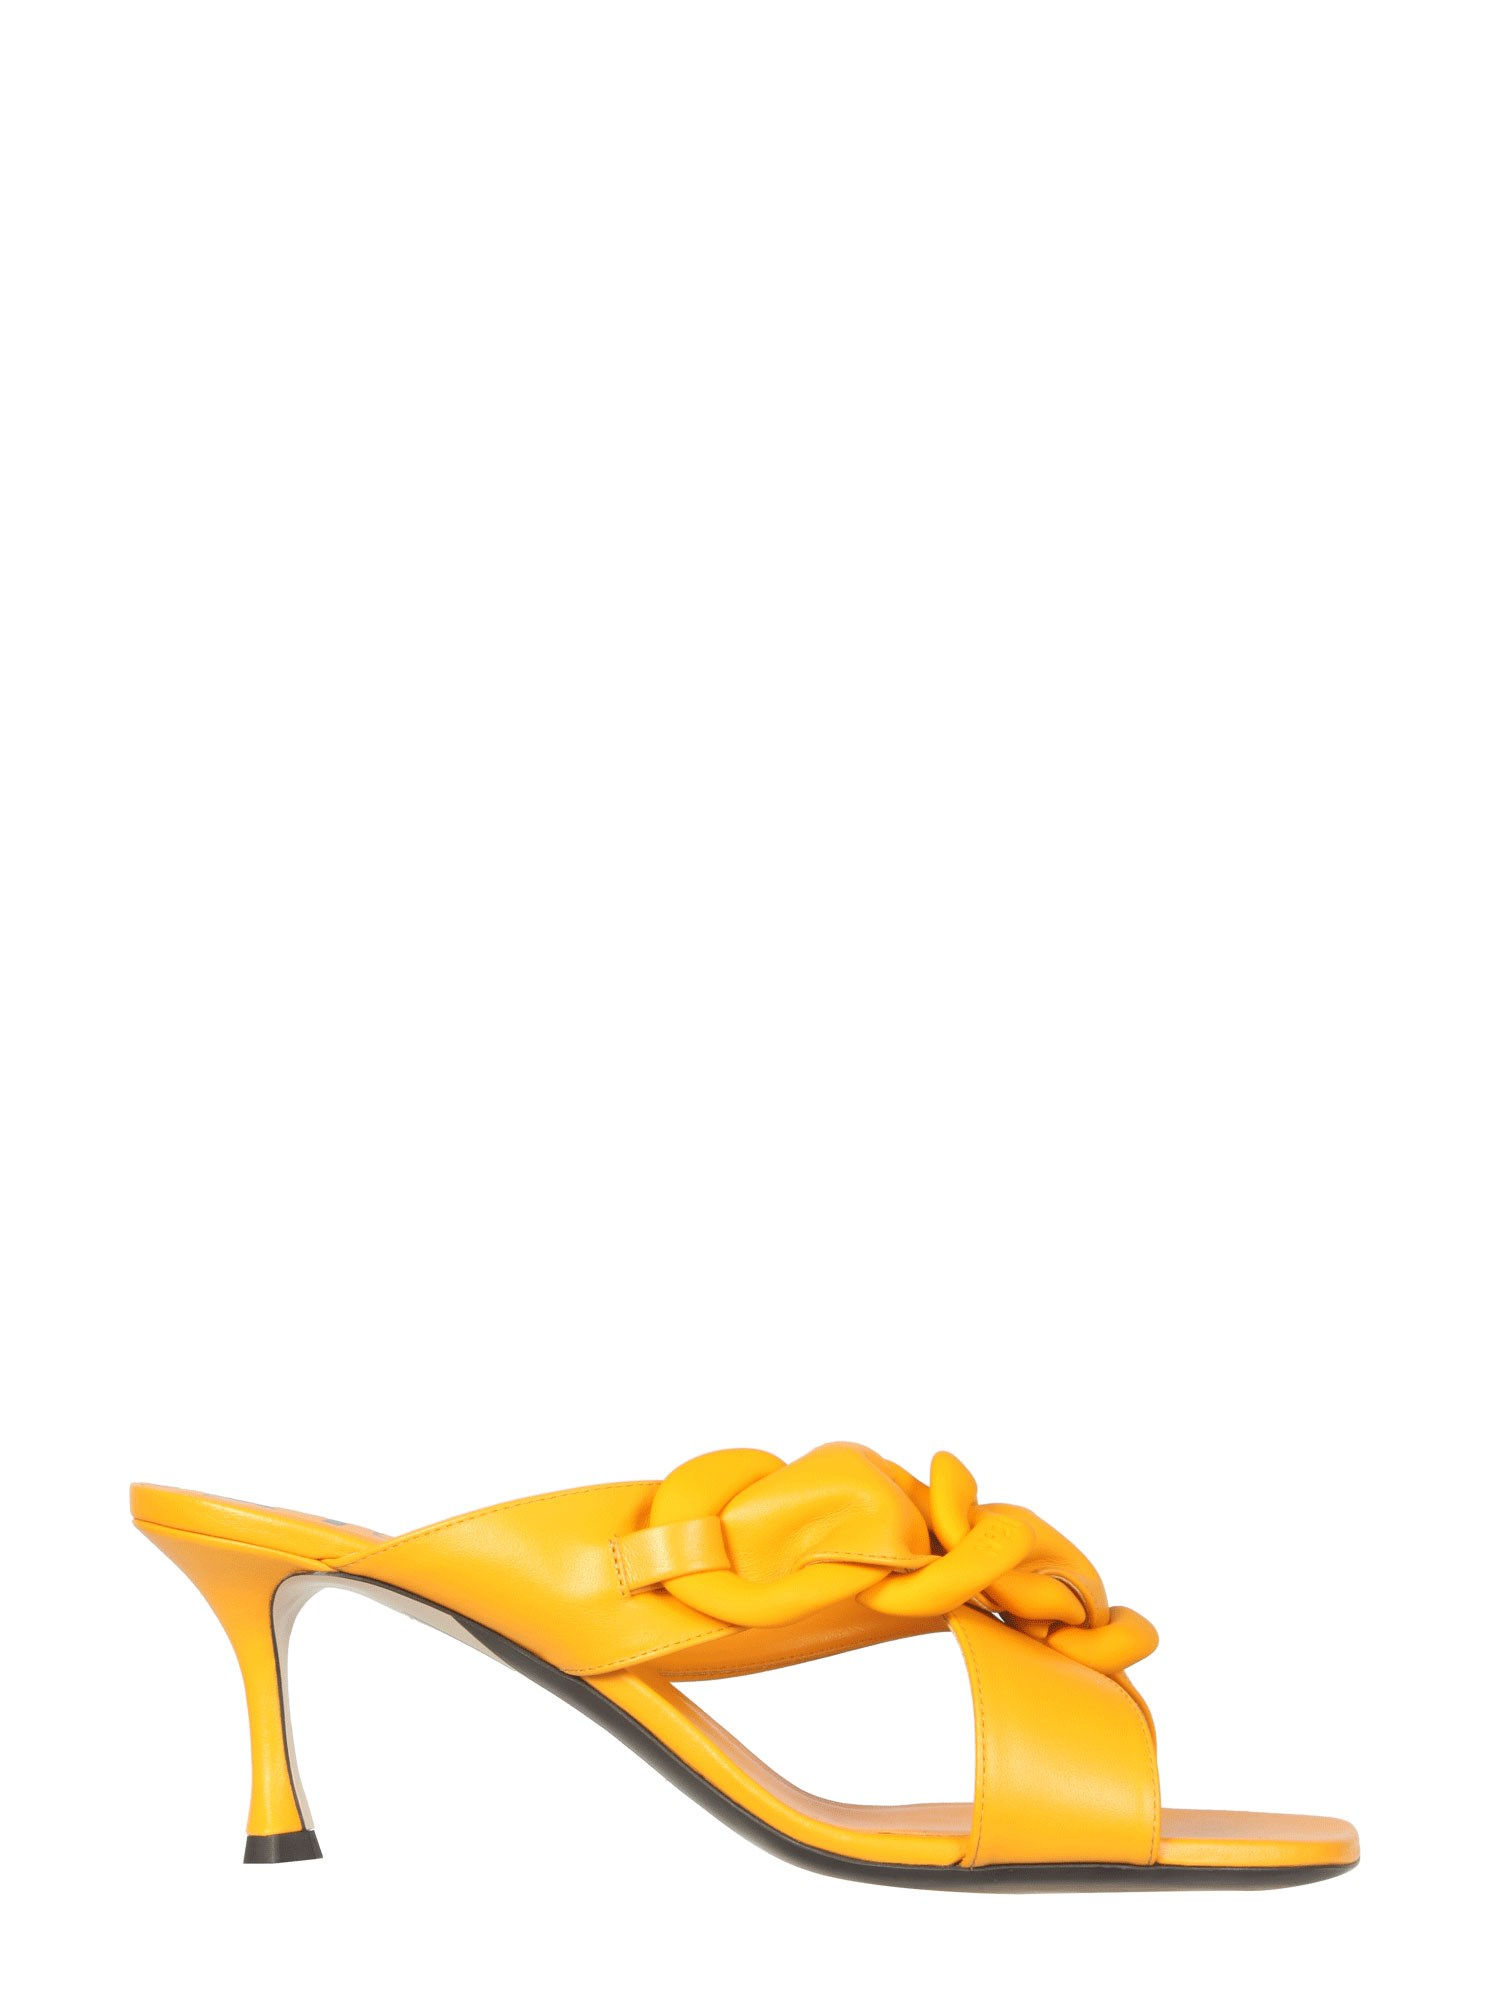 N°21 Mules With Braided Chain In Yellow